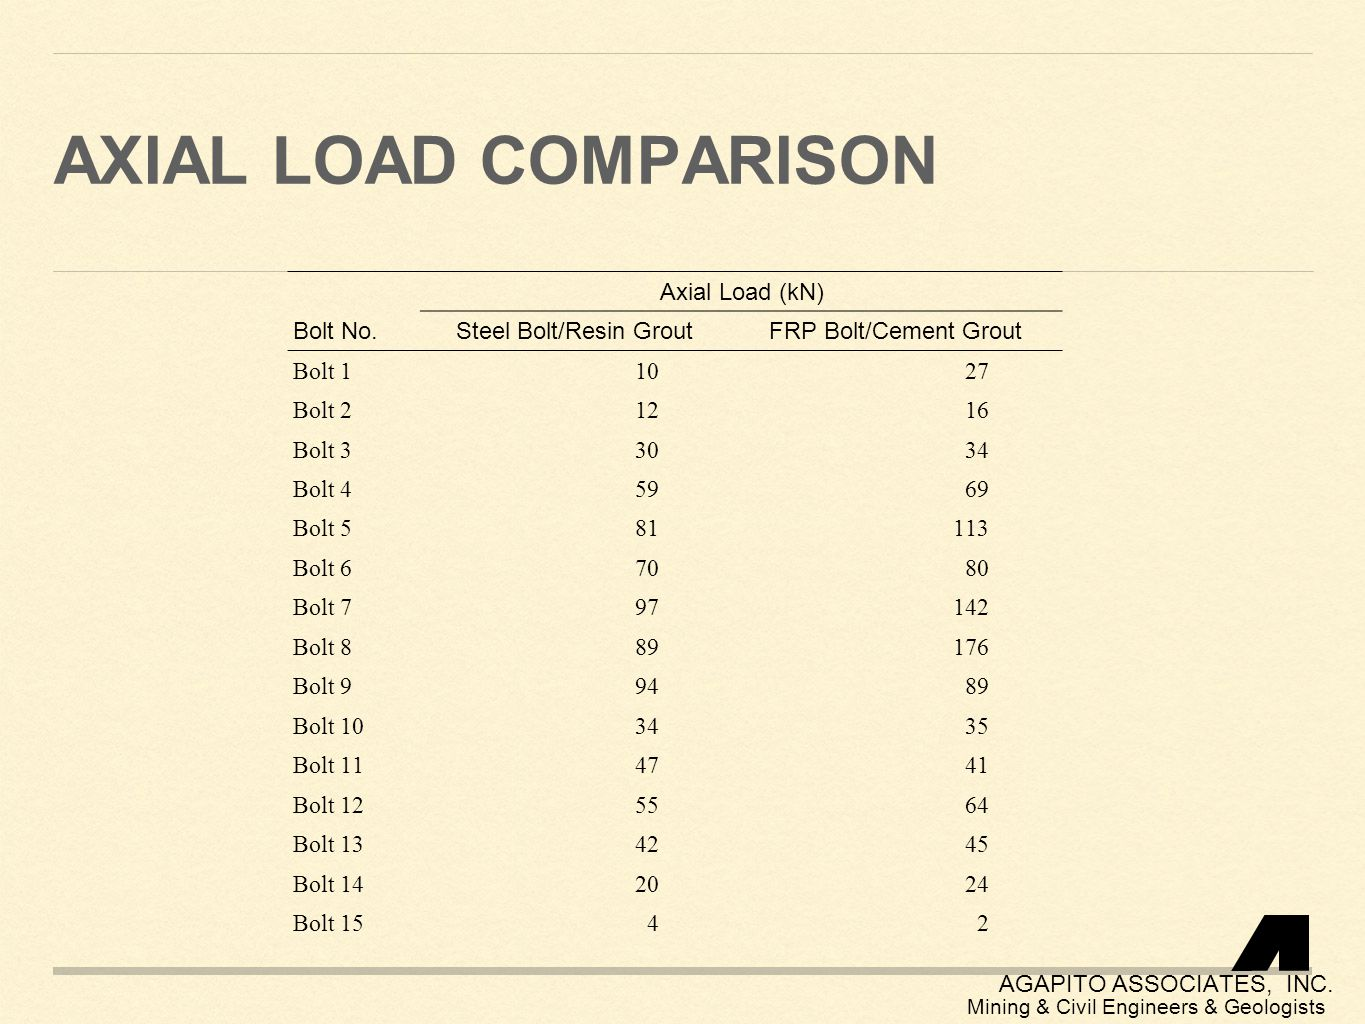 Axial load comparison Bolt No. Axial Load (kN) Steel Bolt/Resin Grout